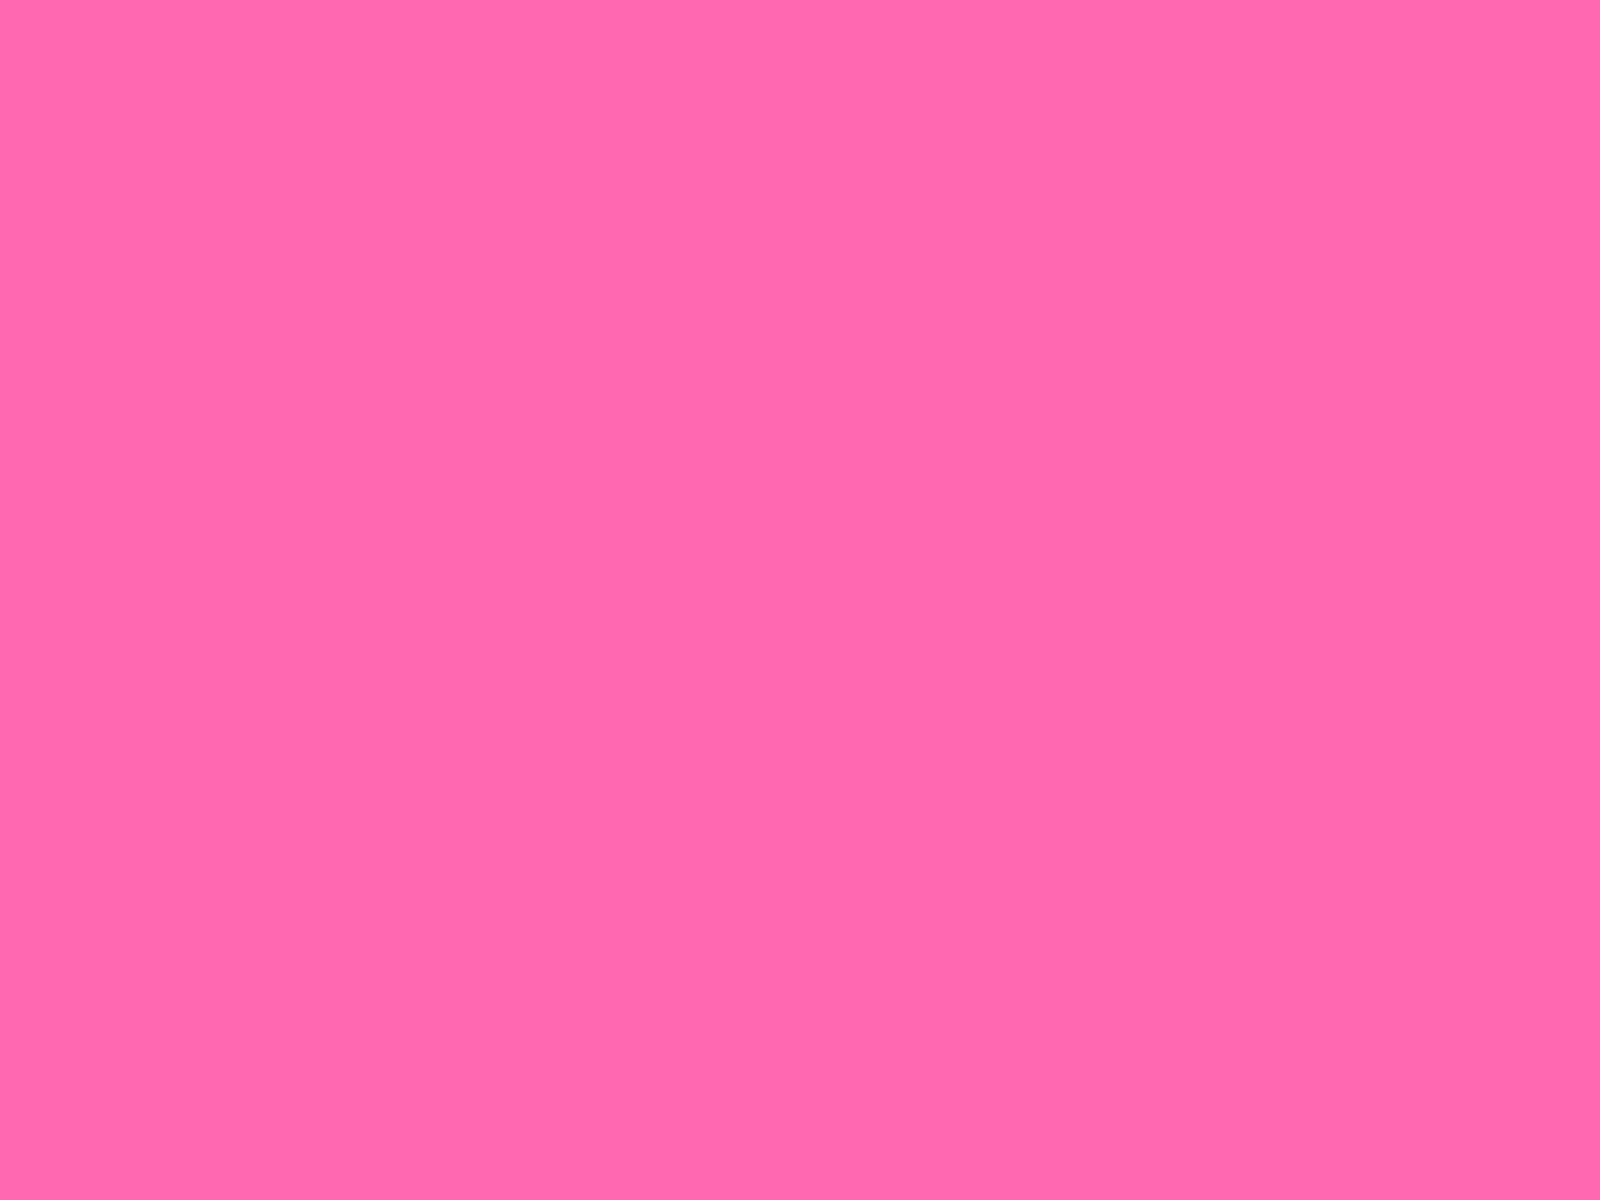 1600x1200 Hot Pink Solid Color Background